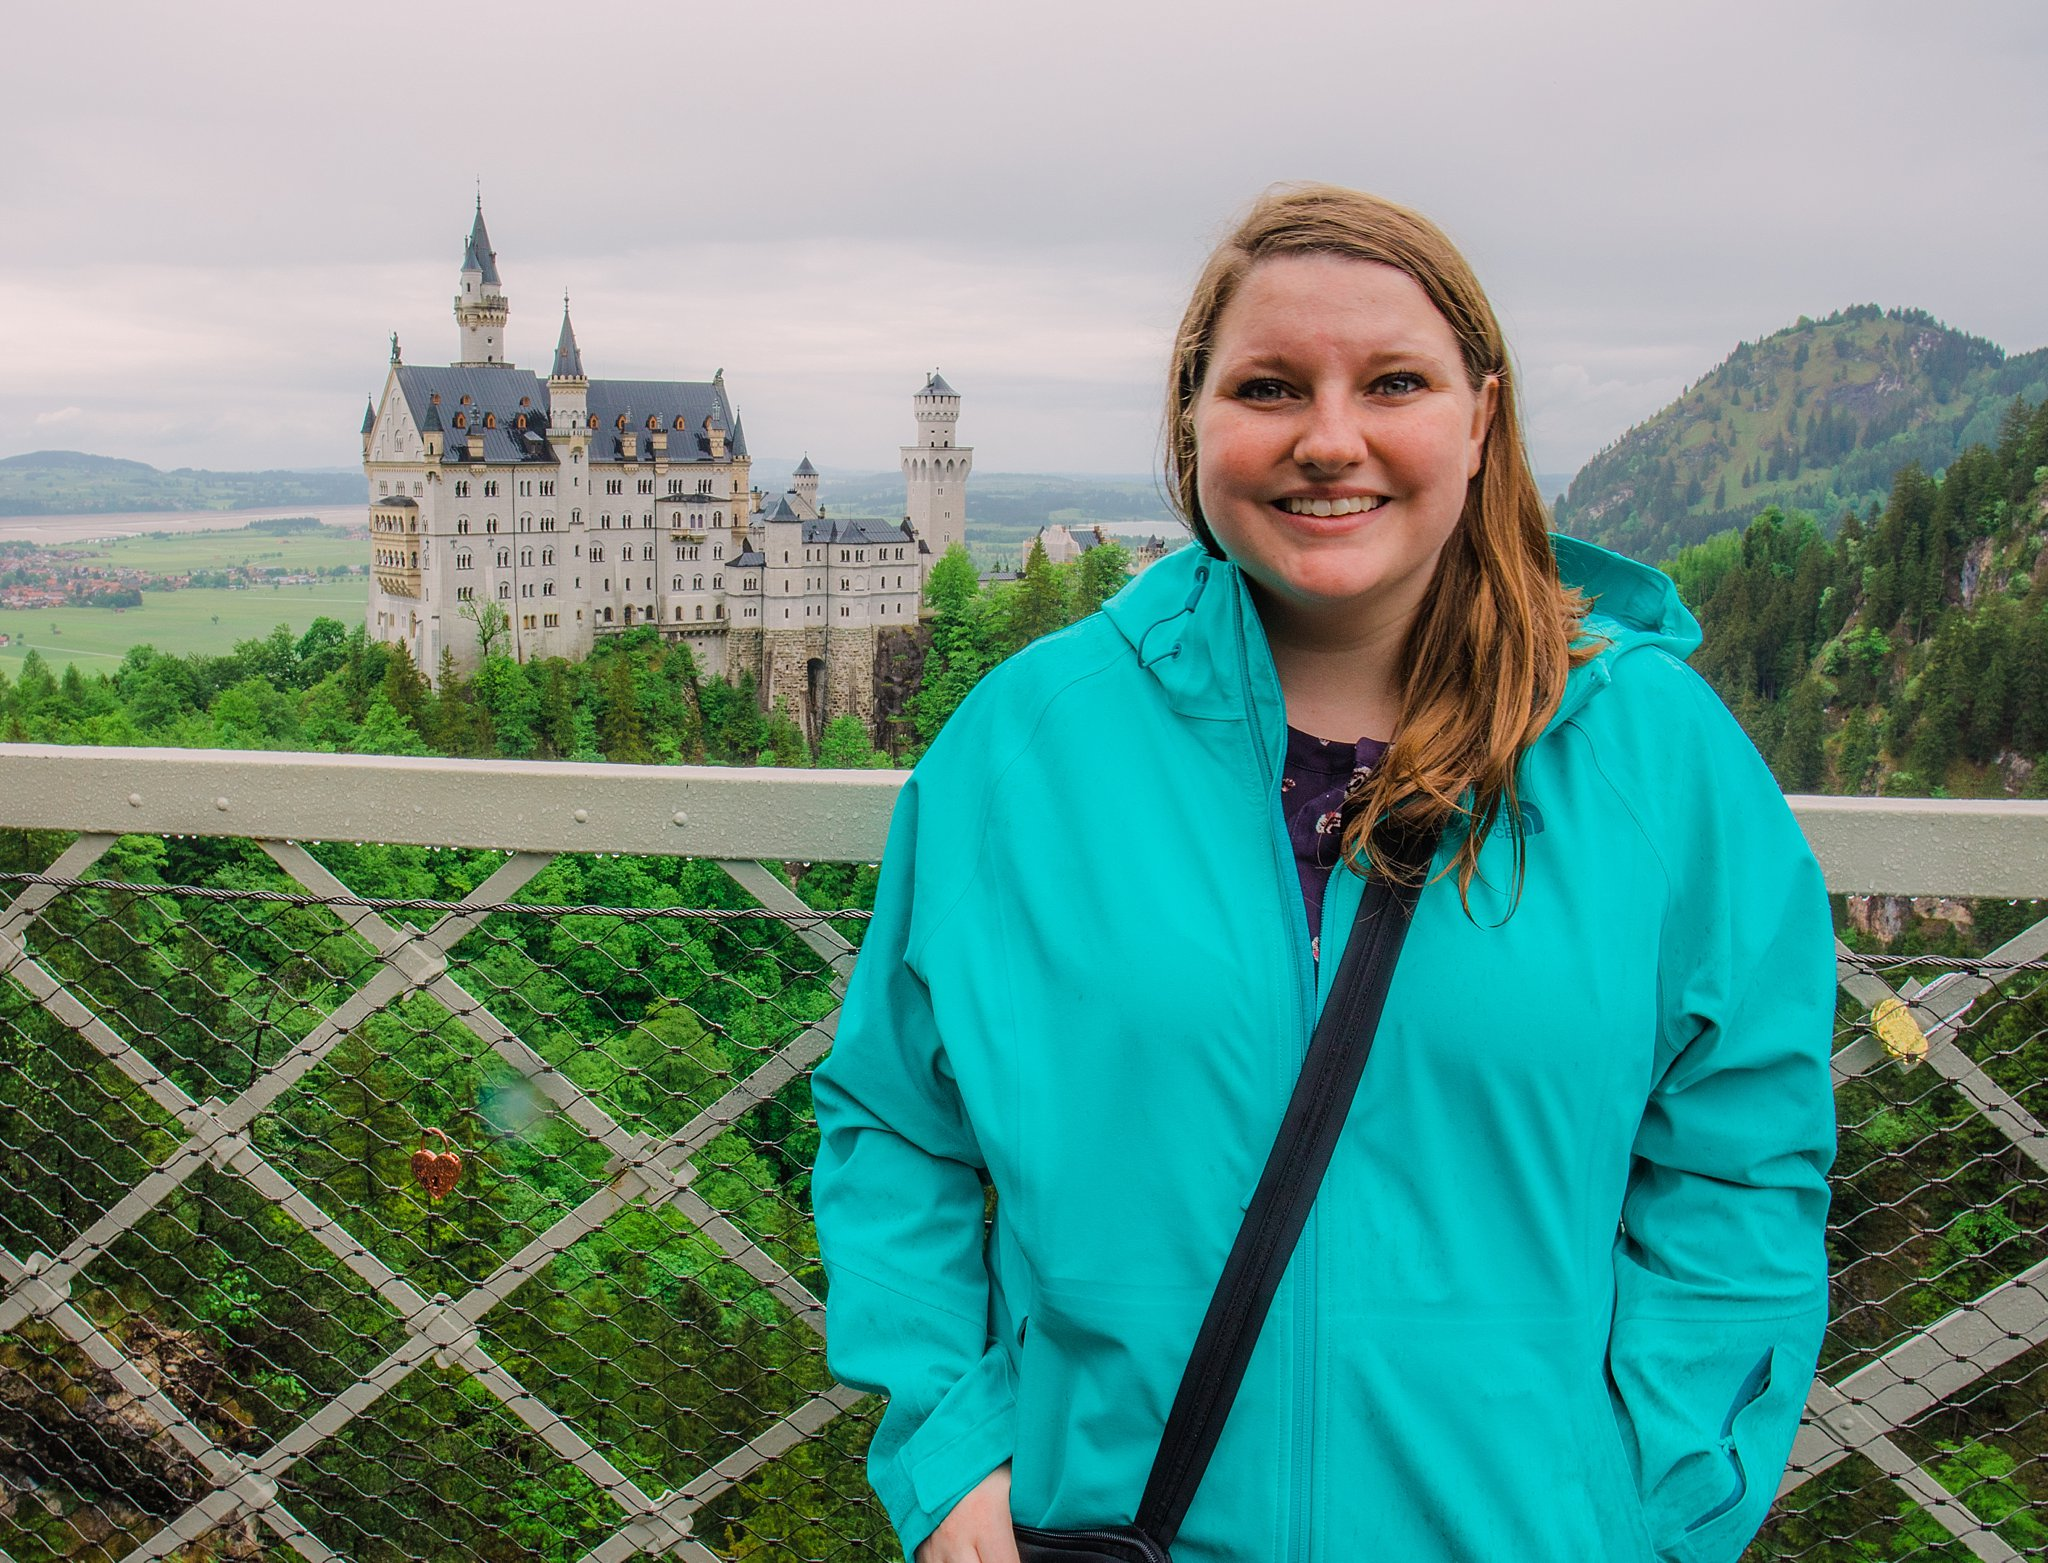 anniversary,bavarian,castle,couple vacation,europe,germany,neuschwanstein castle,swiss,switzerland,